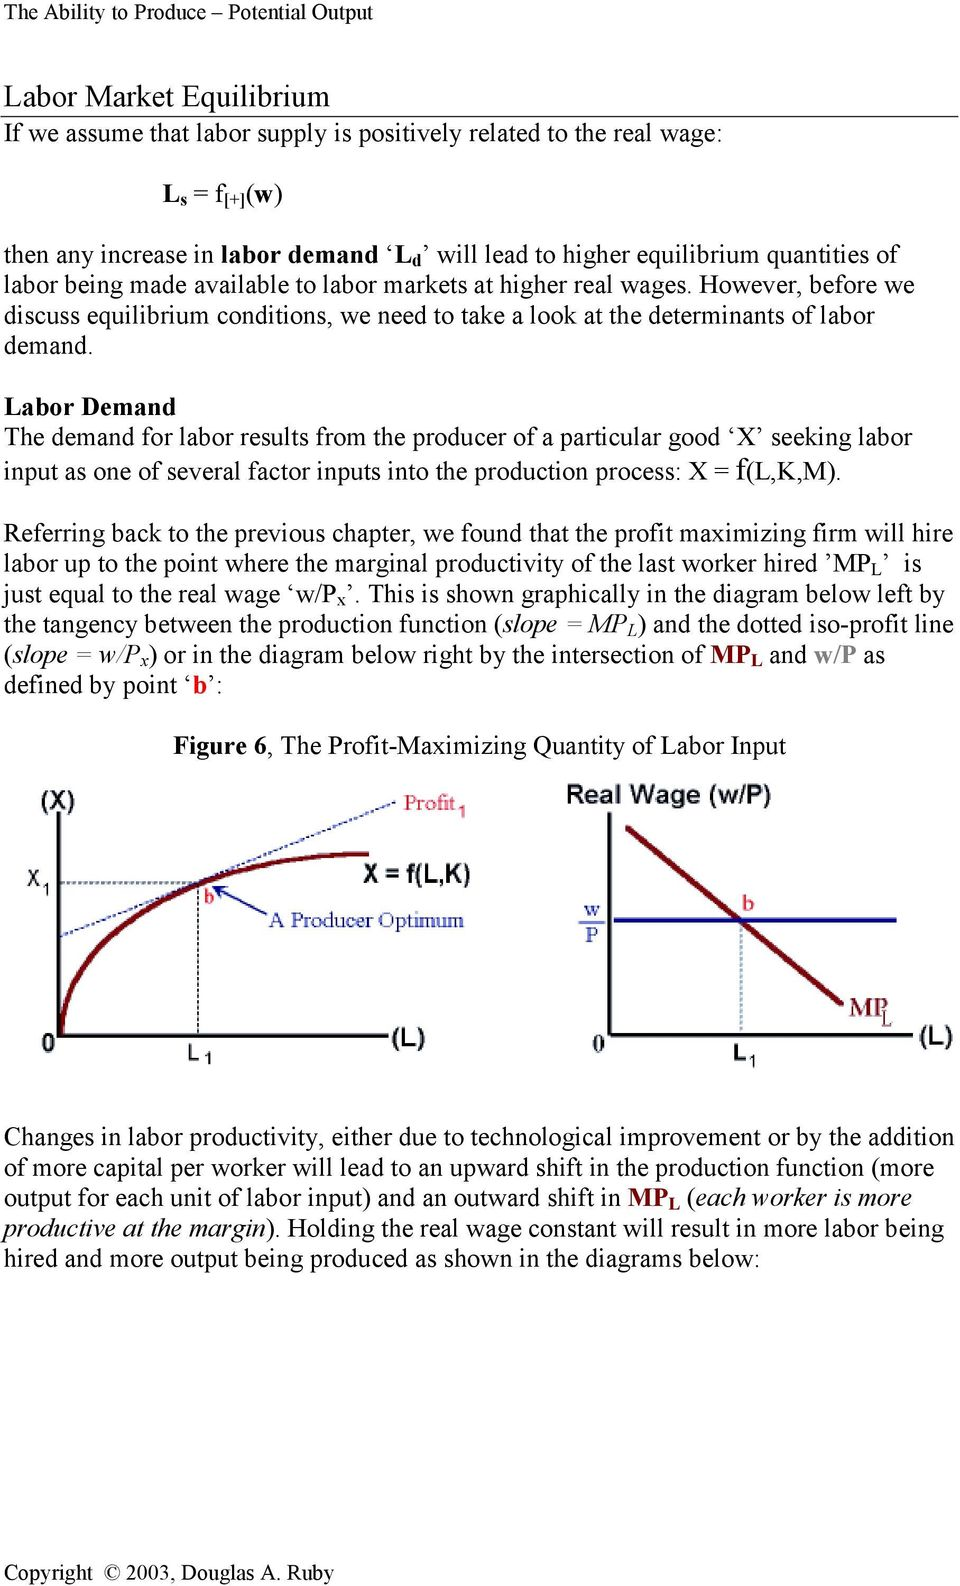 Labor Demand The demand for labor results from the producer of a particular good X seeking labor input as one of several factor inputs into the production process: X = f(l,k,m).